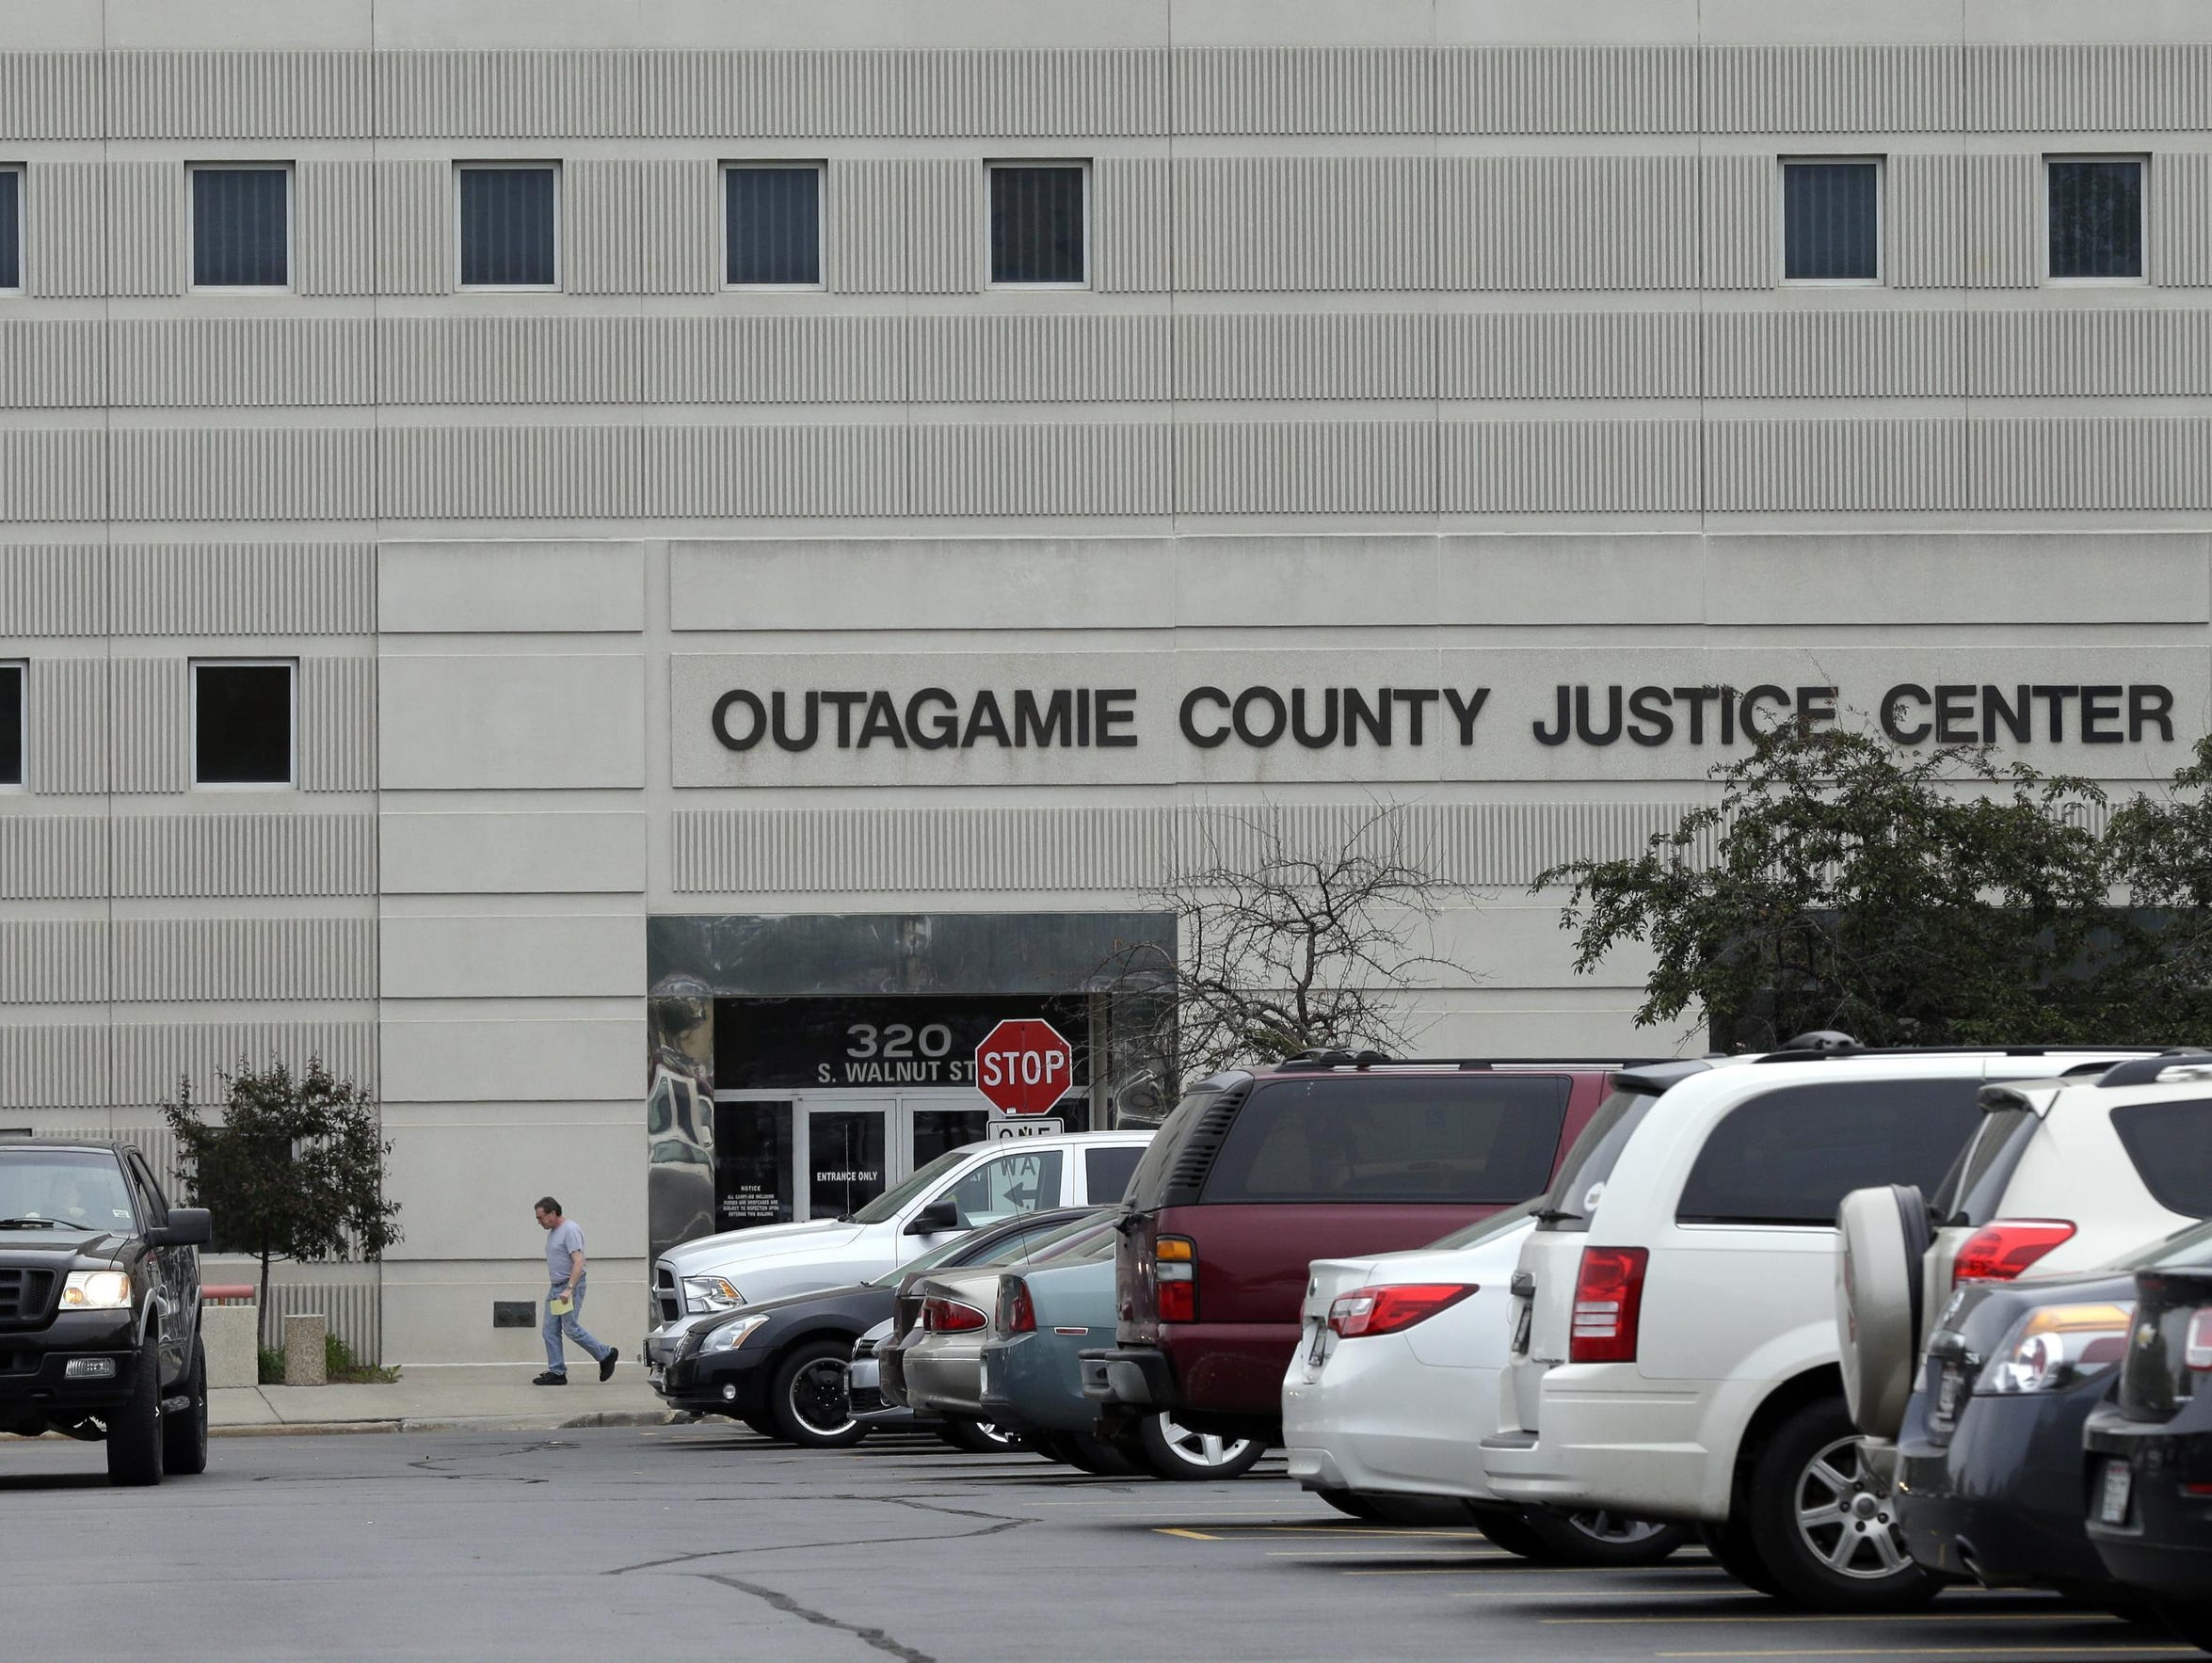 Outagamie County is looking to expand its facilities